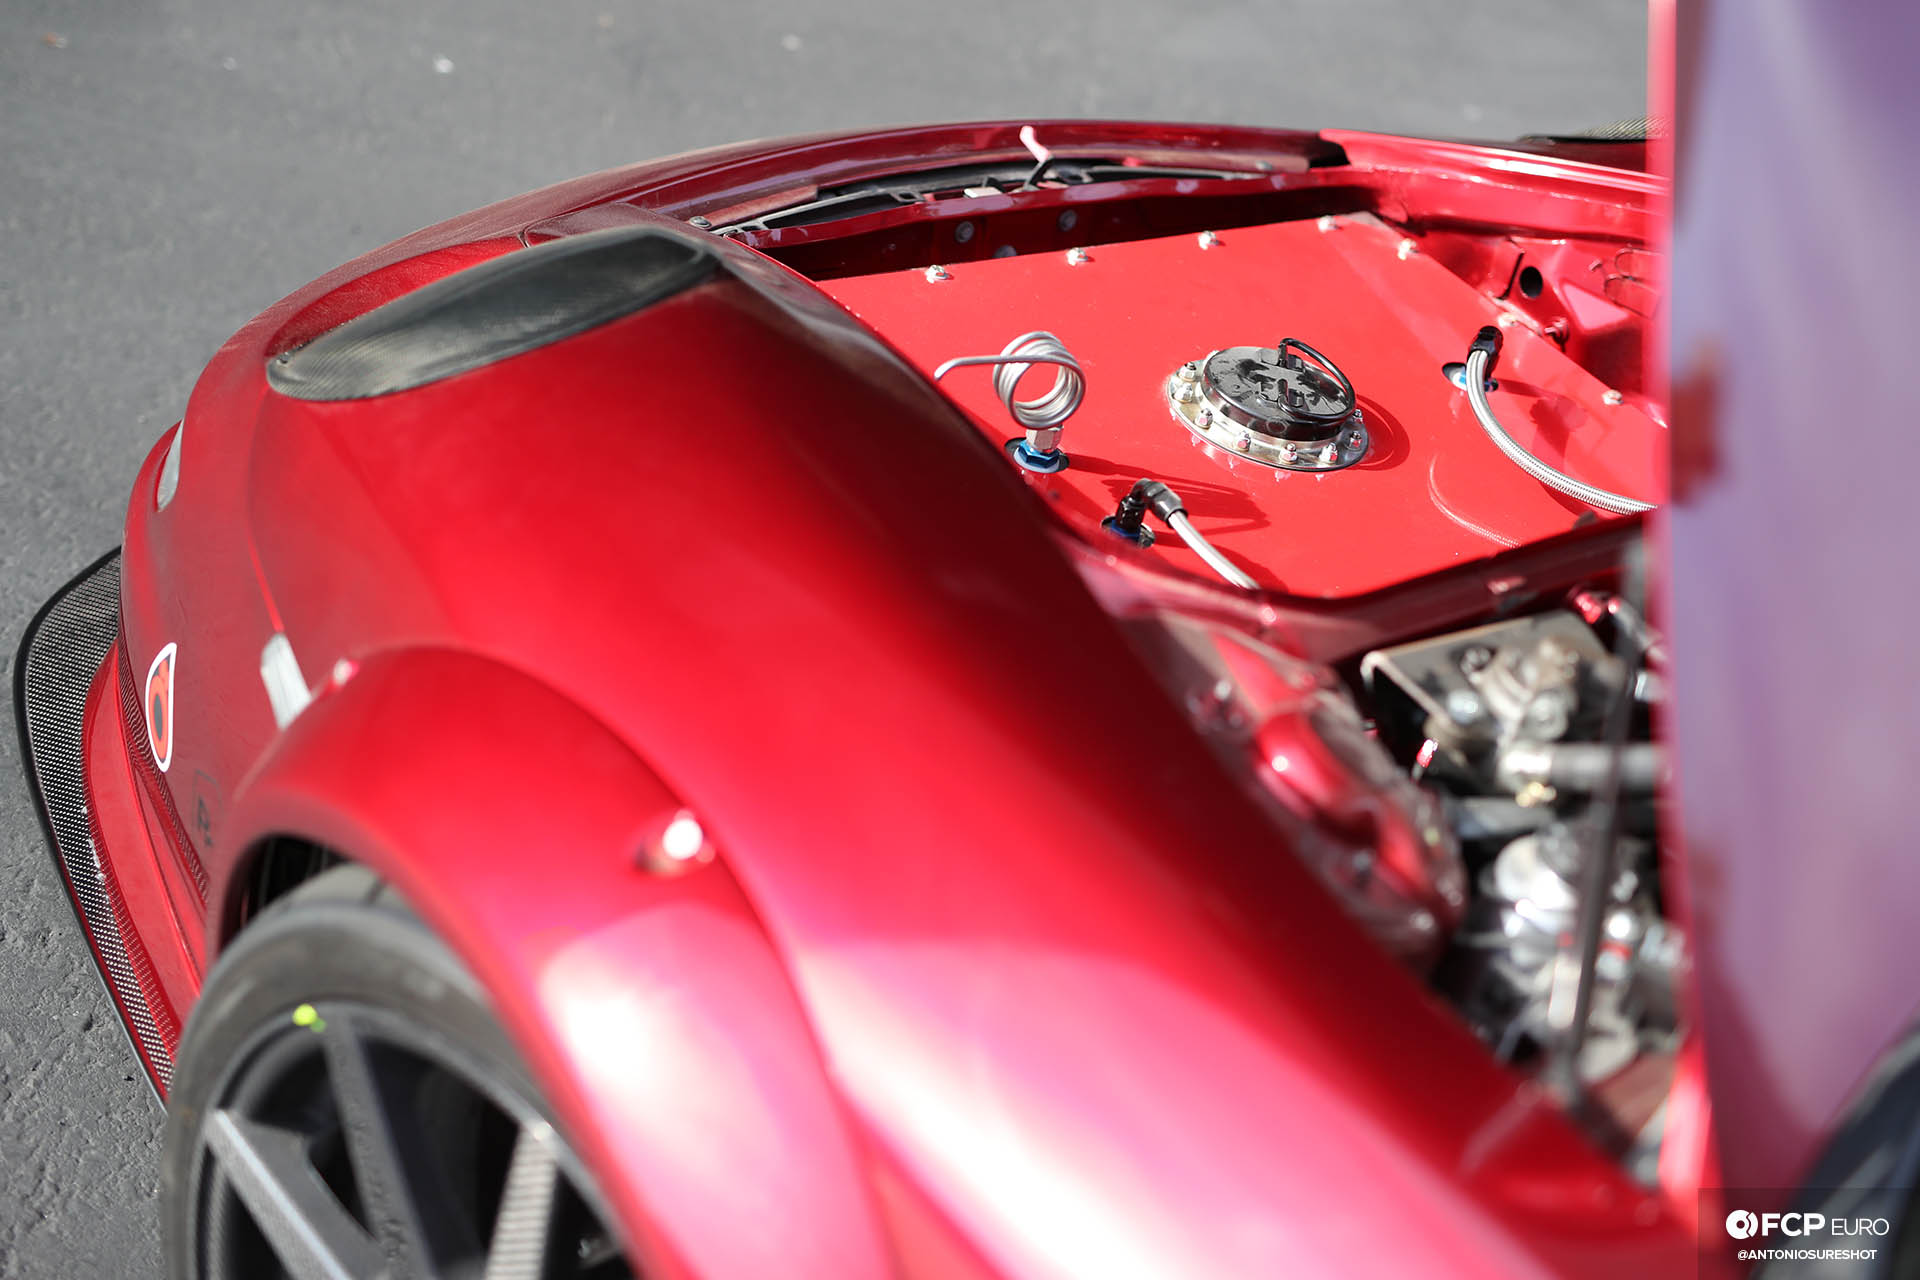 Bisimoto AEM Infinity Porsche Boxster 986 Twin Turbo Center Seat with 997 GT3 facelift ATL fuel cell